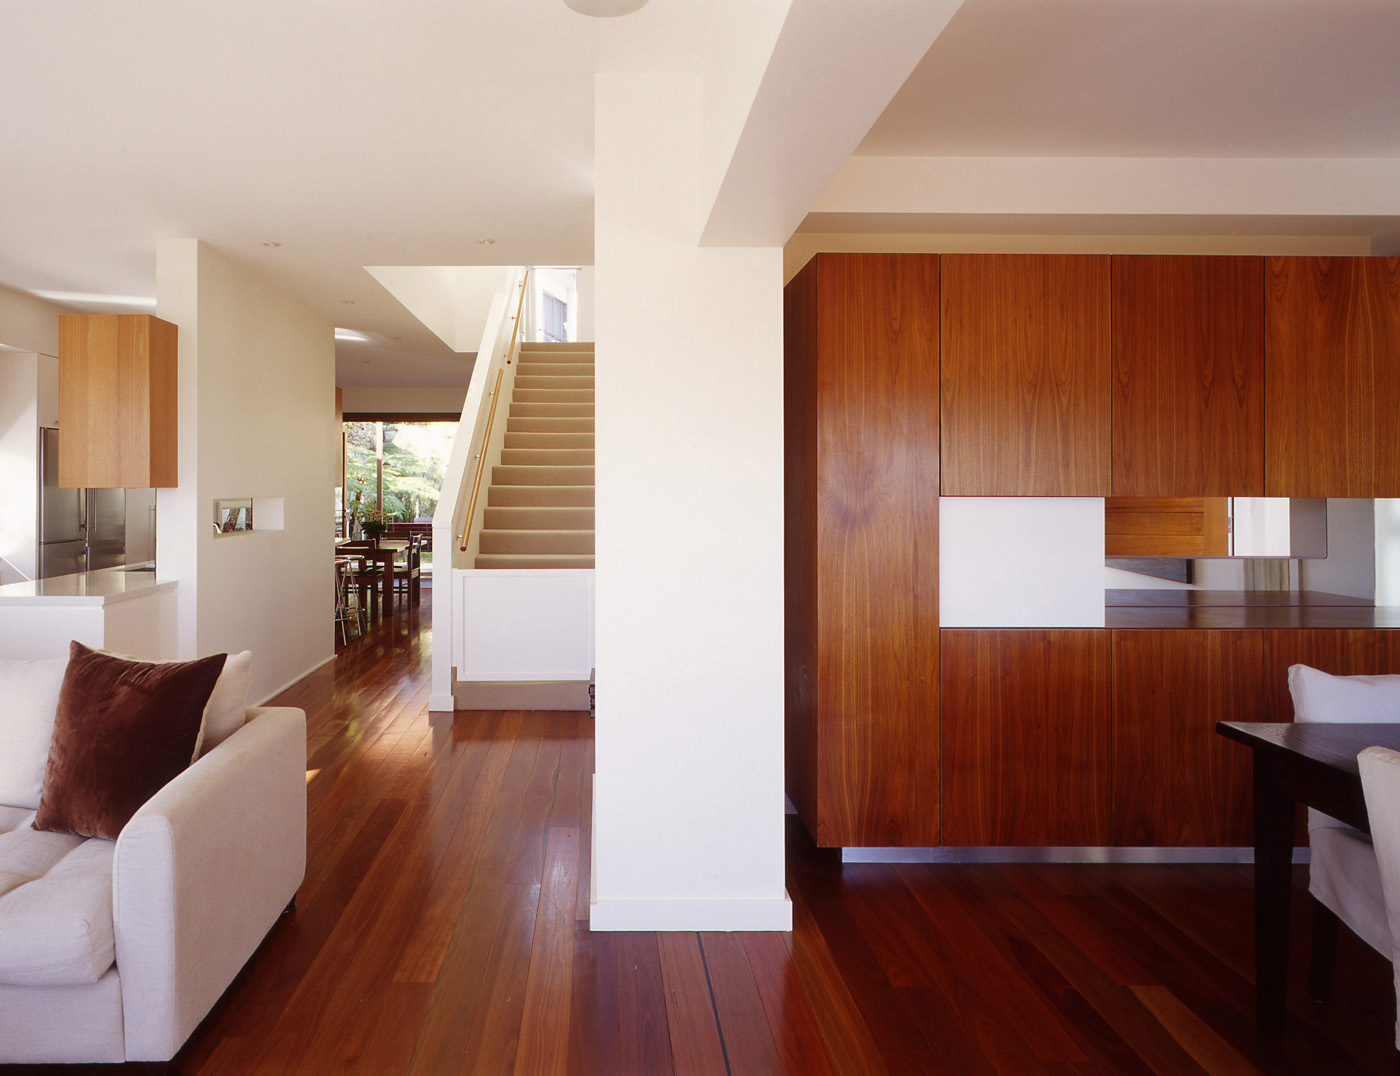 Harbour House by Sydney award winning residential architecture office Sam Crawford Architects. Spotted gum timber floors seamlessly connect living areas.